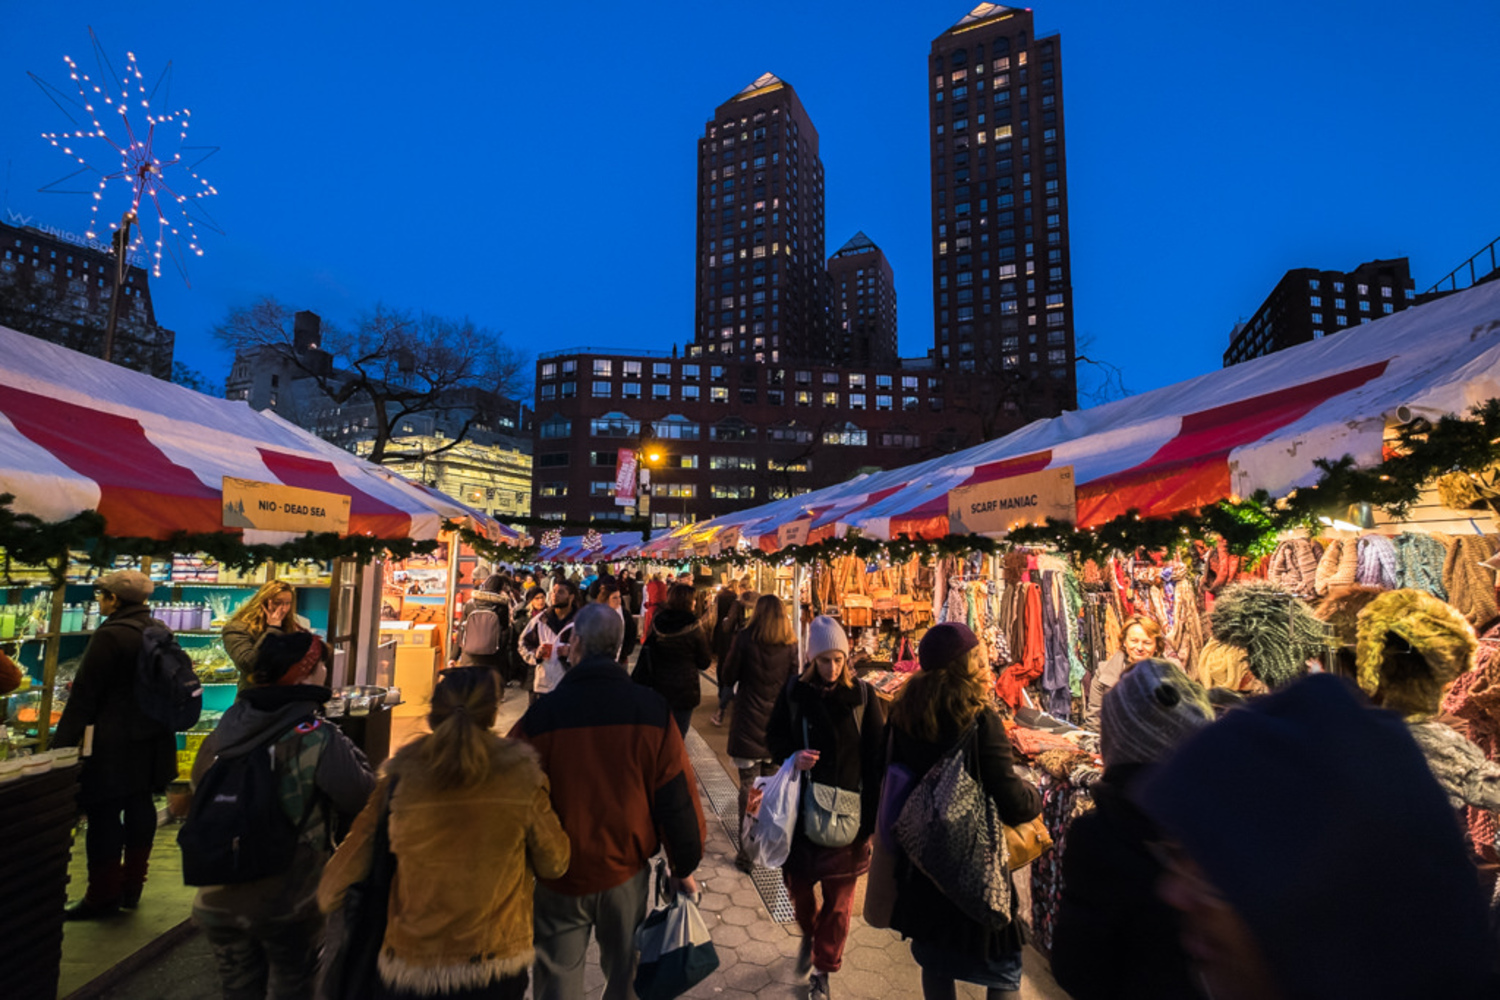 Union Square Holiday Market | Union Square Holiday Market